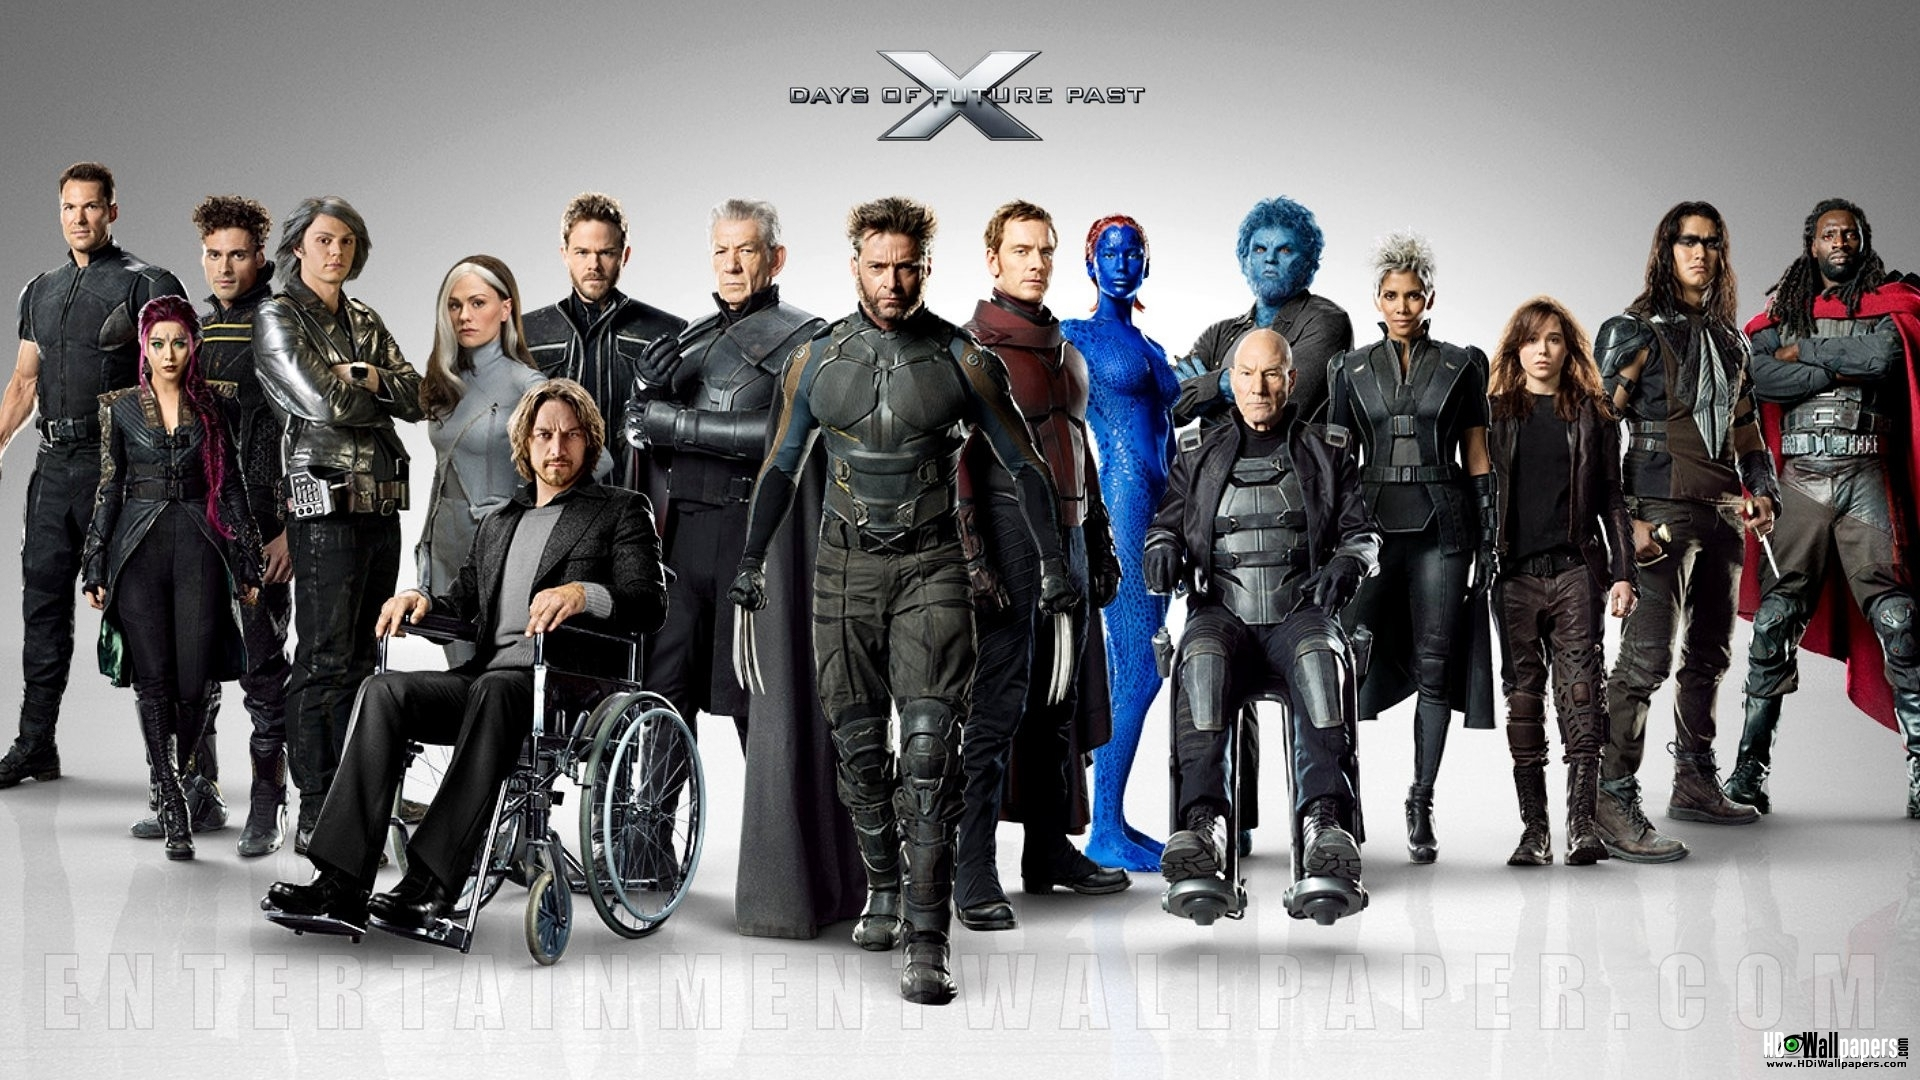 x men days of future past hd wallpaper free download photos 1